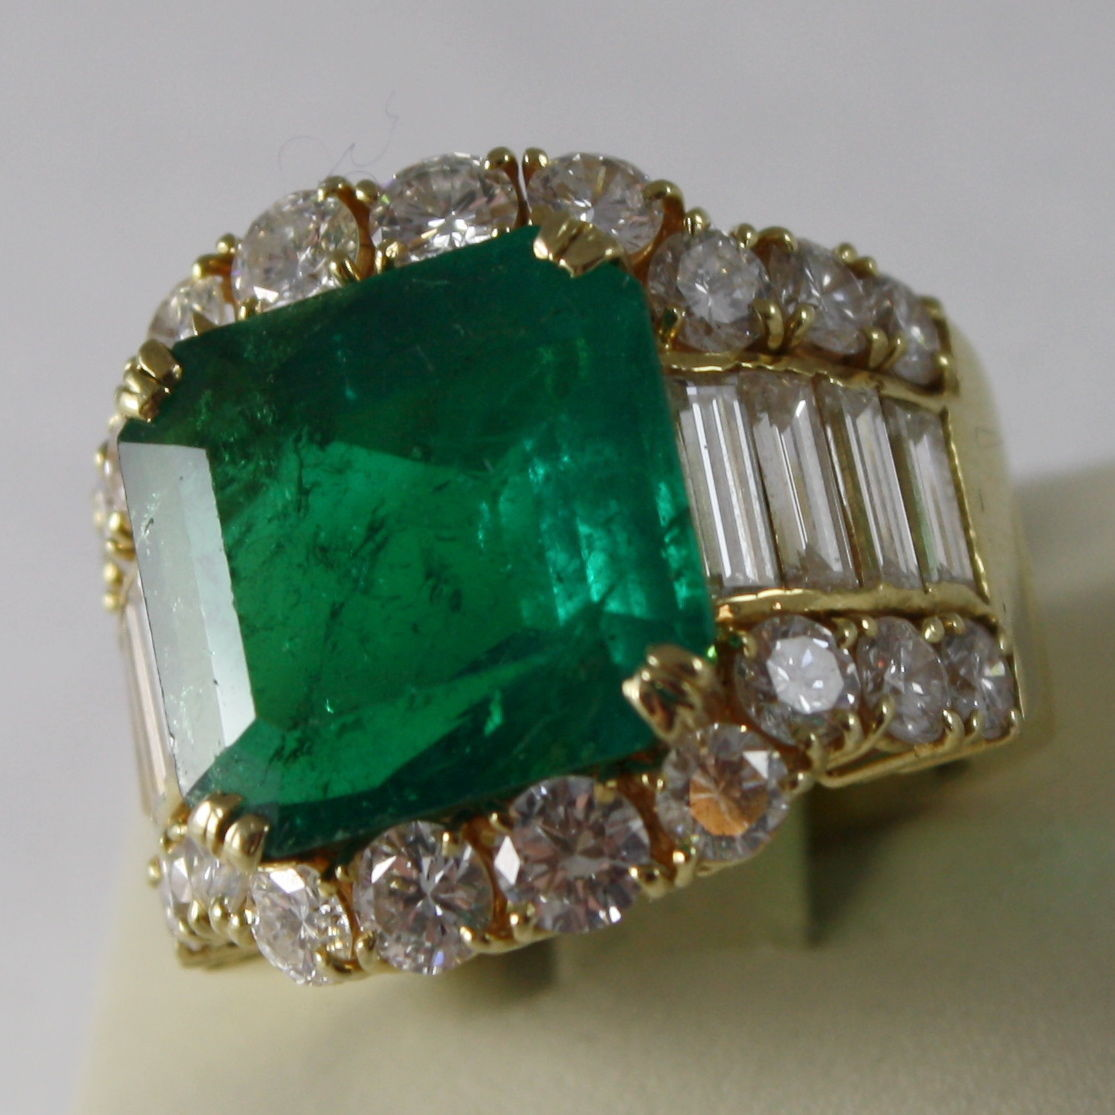 SOLID 18K YELLOW GOLD RING, DIAMONDS AND COLOMBIAN EMERALD, TOTAL CARATS 12.61